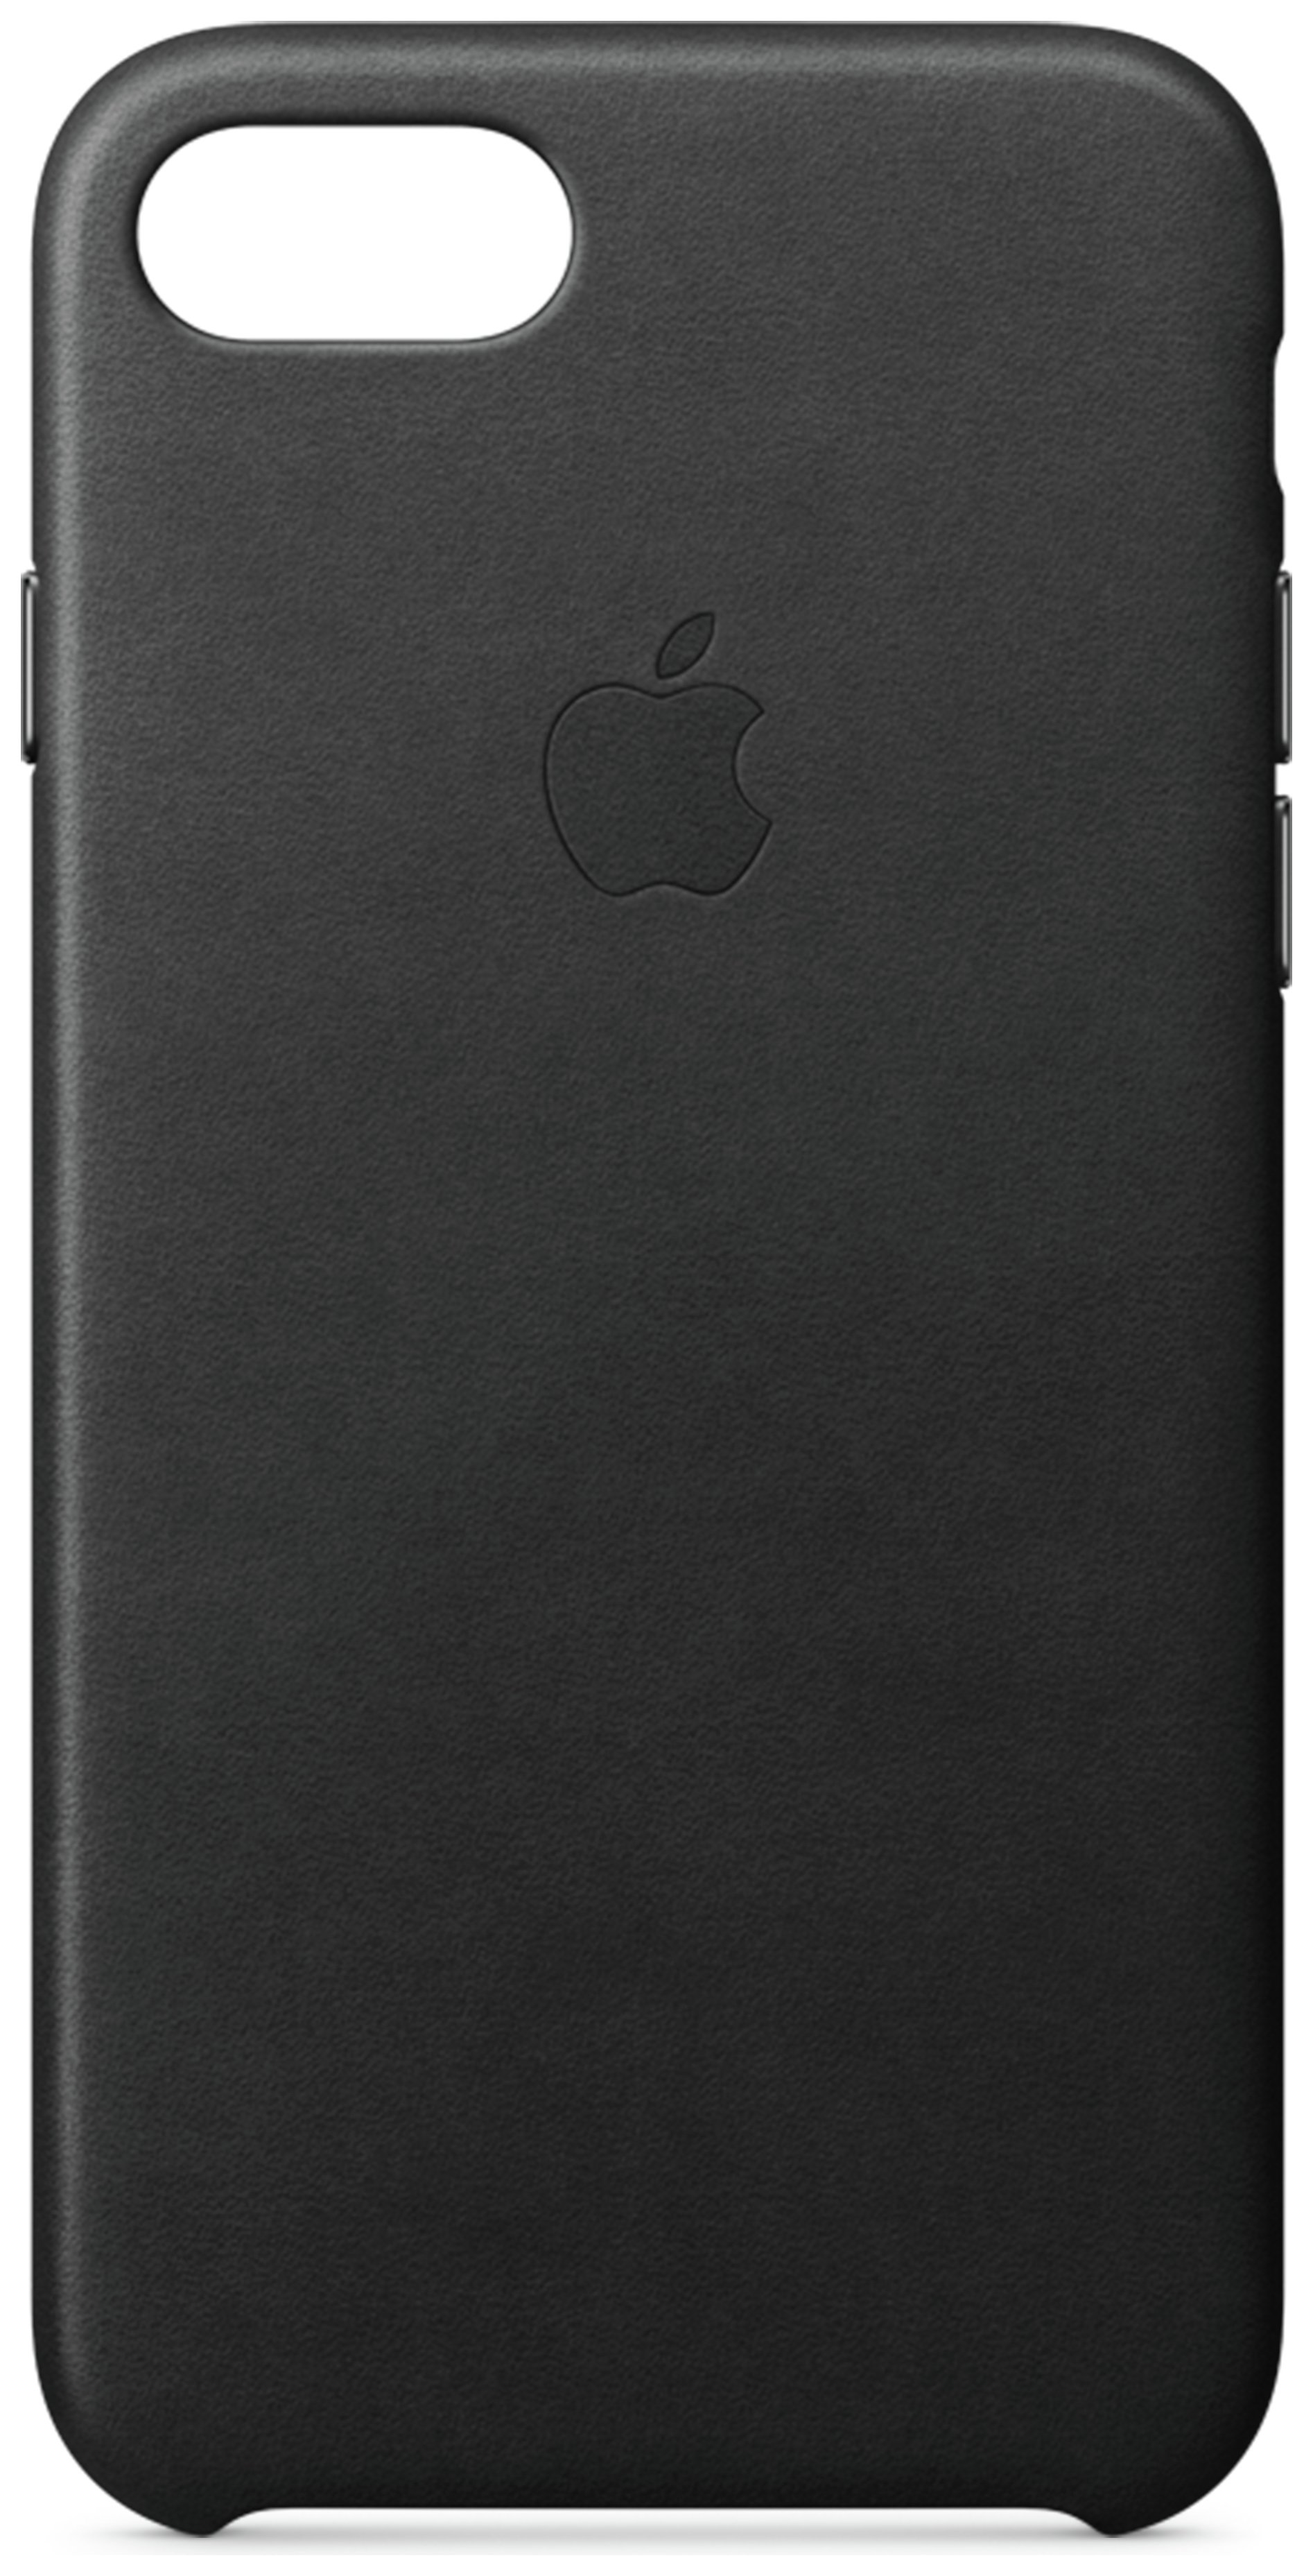 Apple iPhone 7 Leather Case Black cheapest retail price